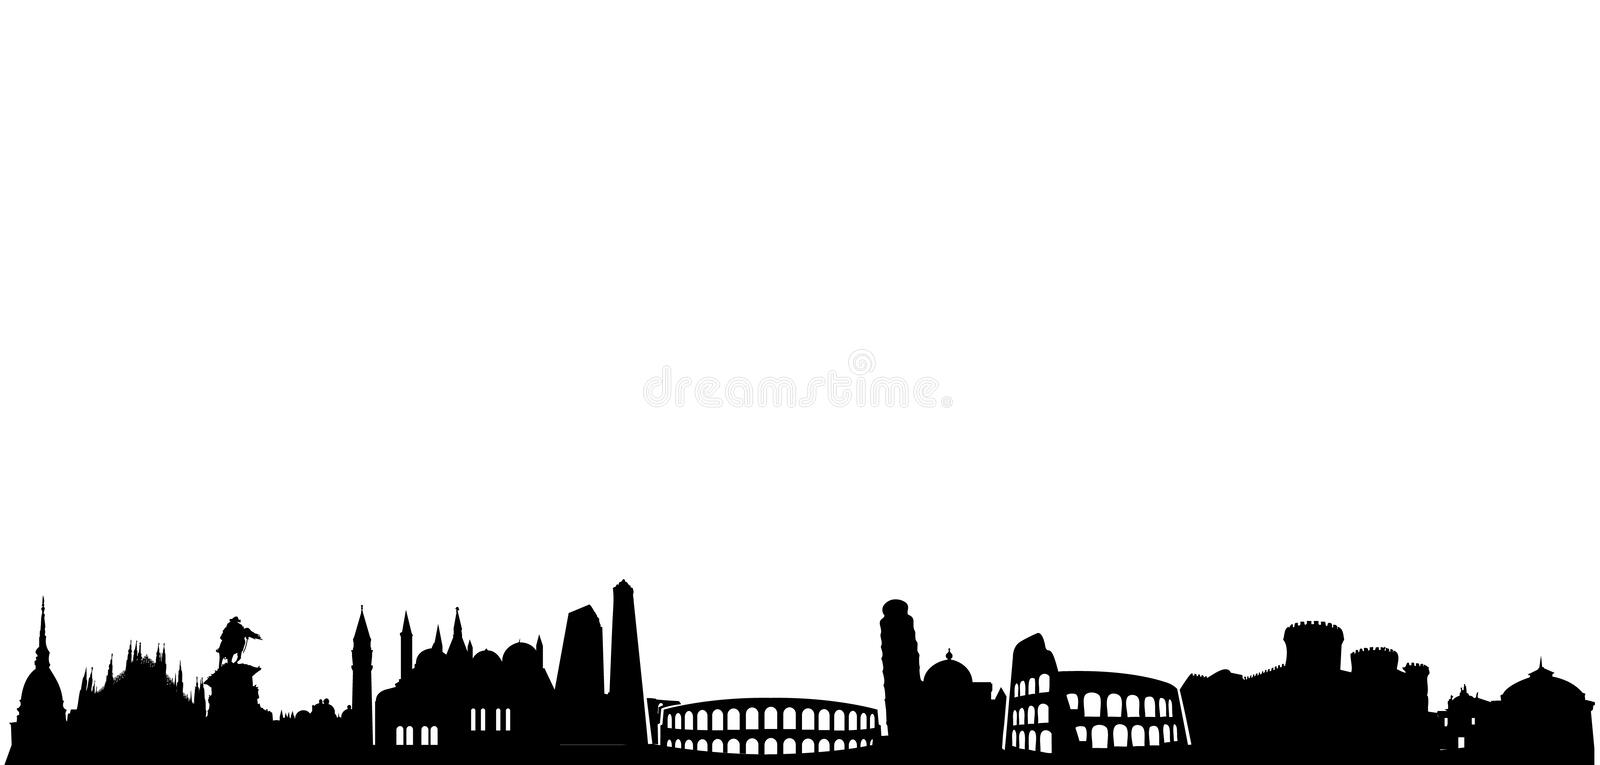 Italy monuments and landmarks. Vector illustrations of most famous italian monuments all in a row as silhouettes, as coliseum and other symbols of cities as